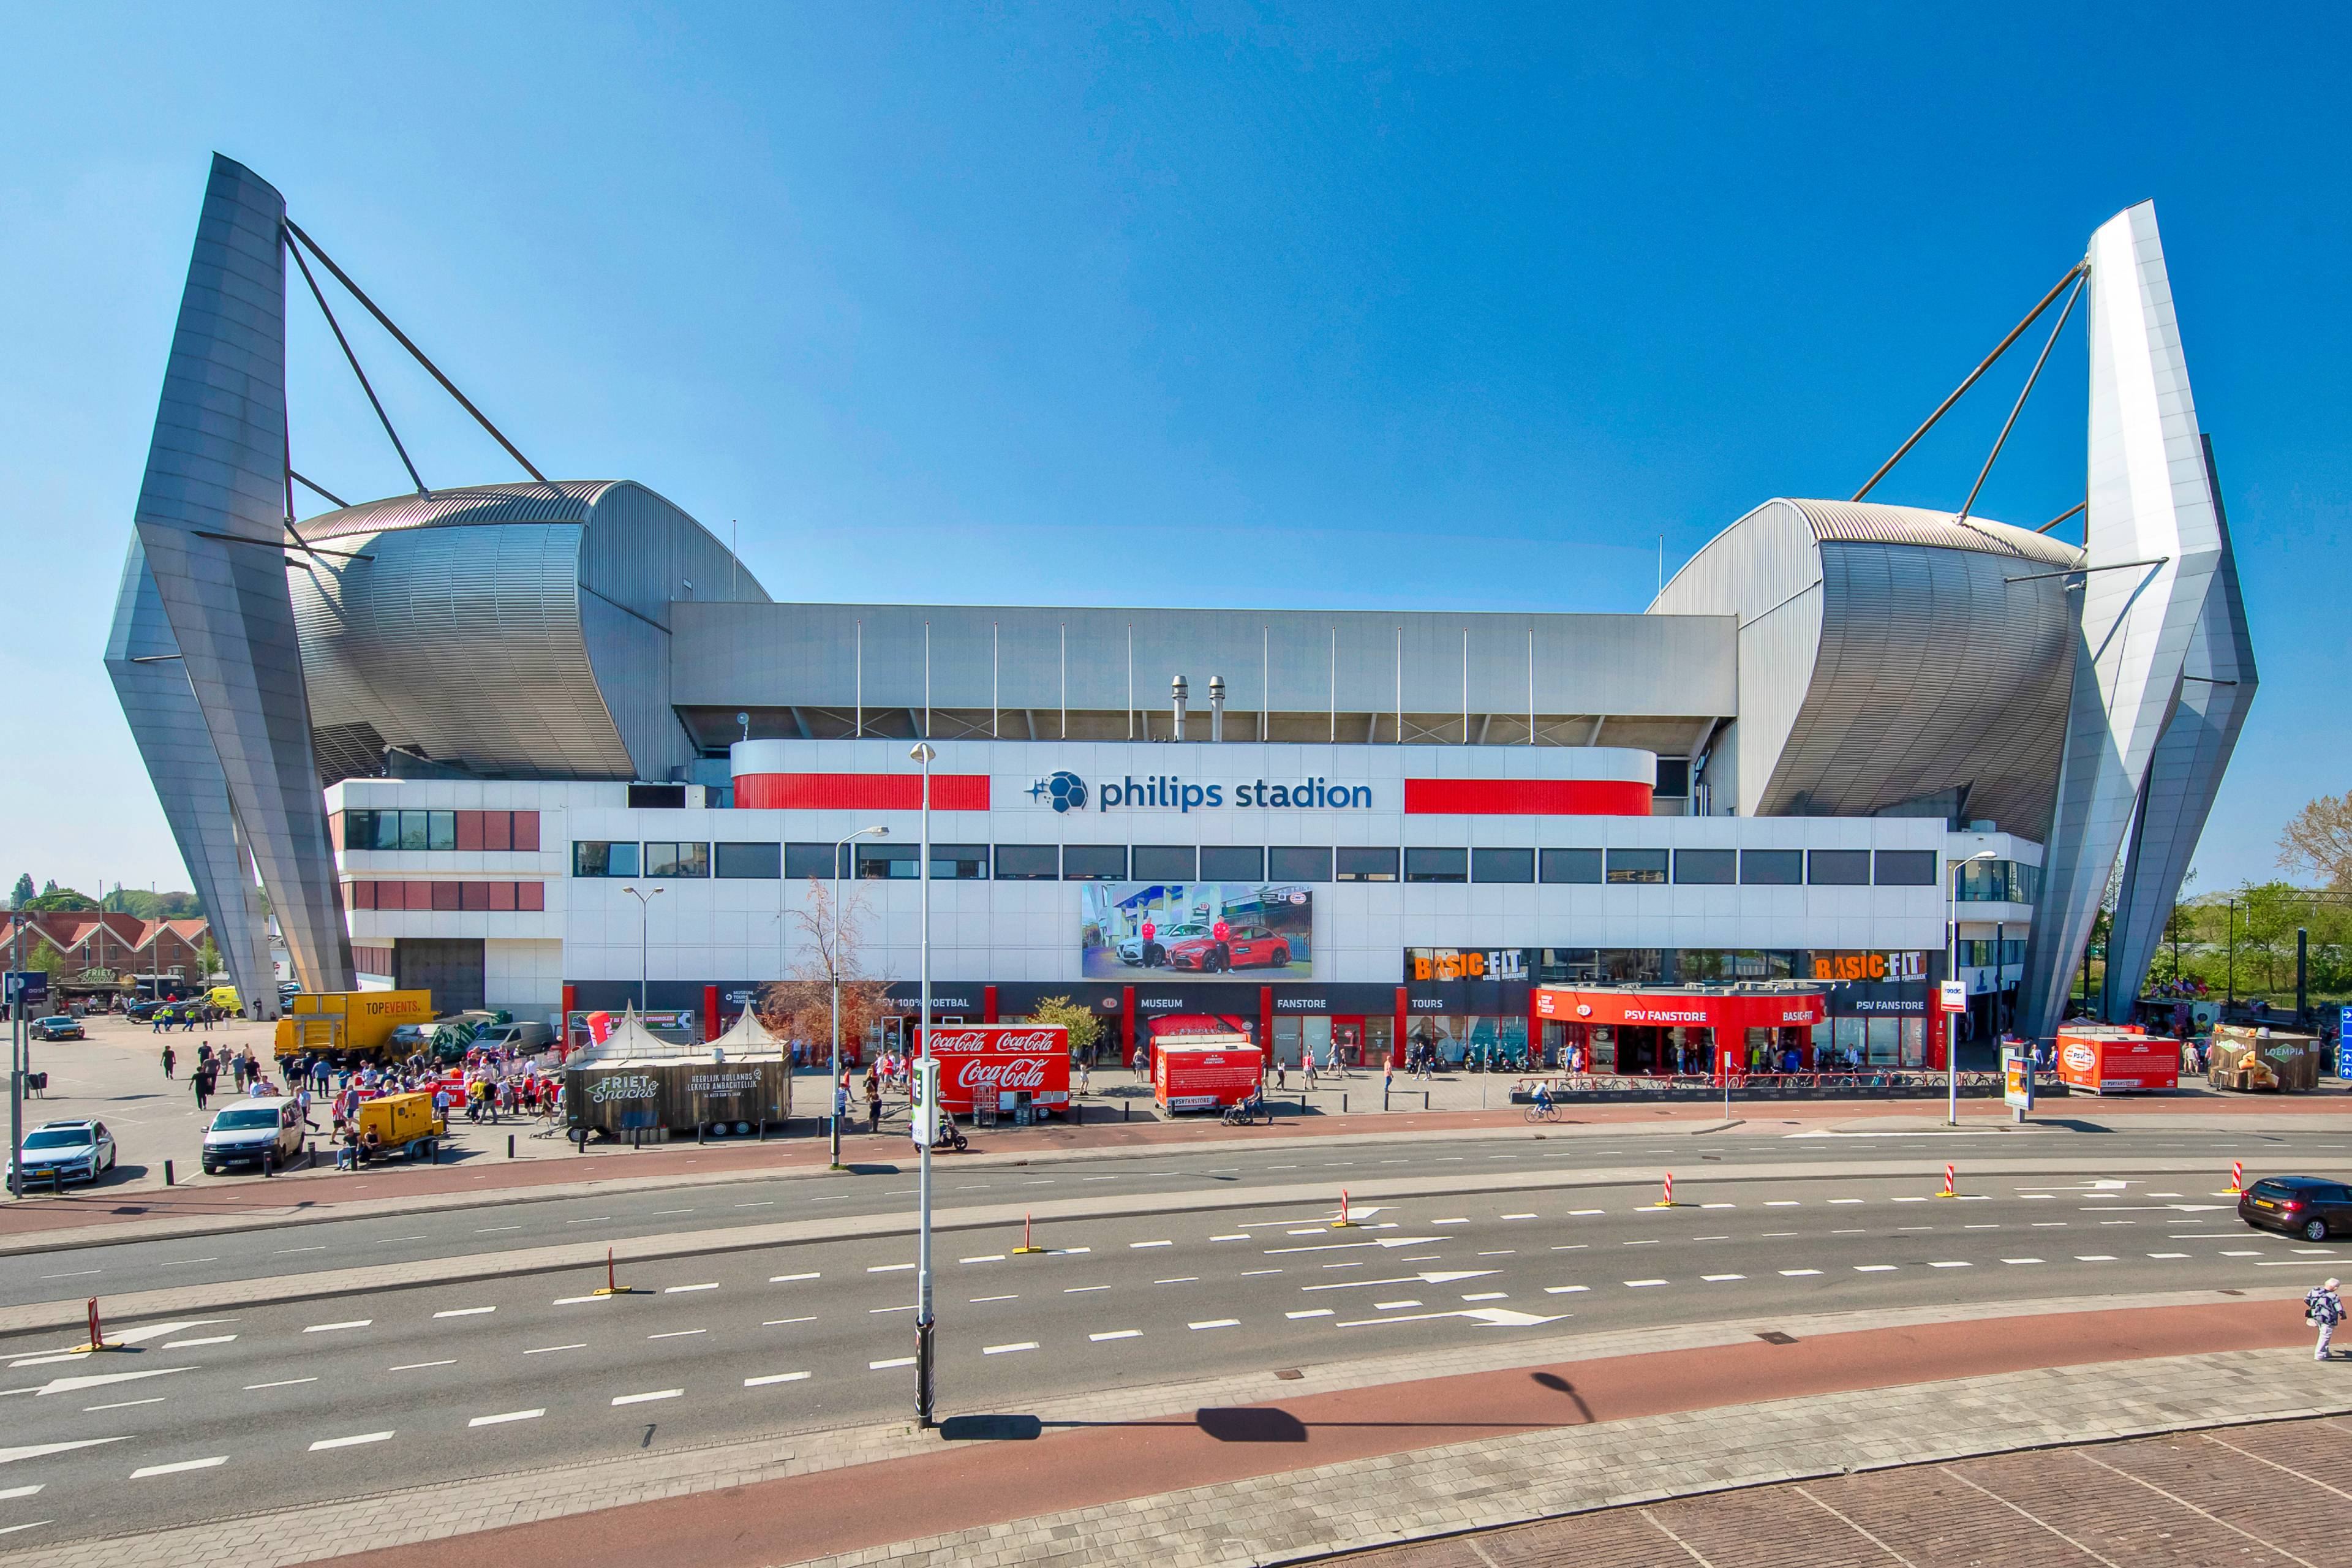 Dutch soccer club PSV wants to tackle COVID-19 by installing Signify's UV-C disinfection lighting